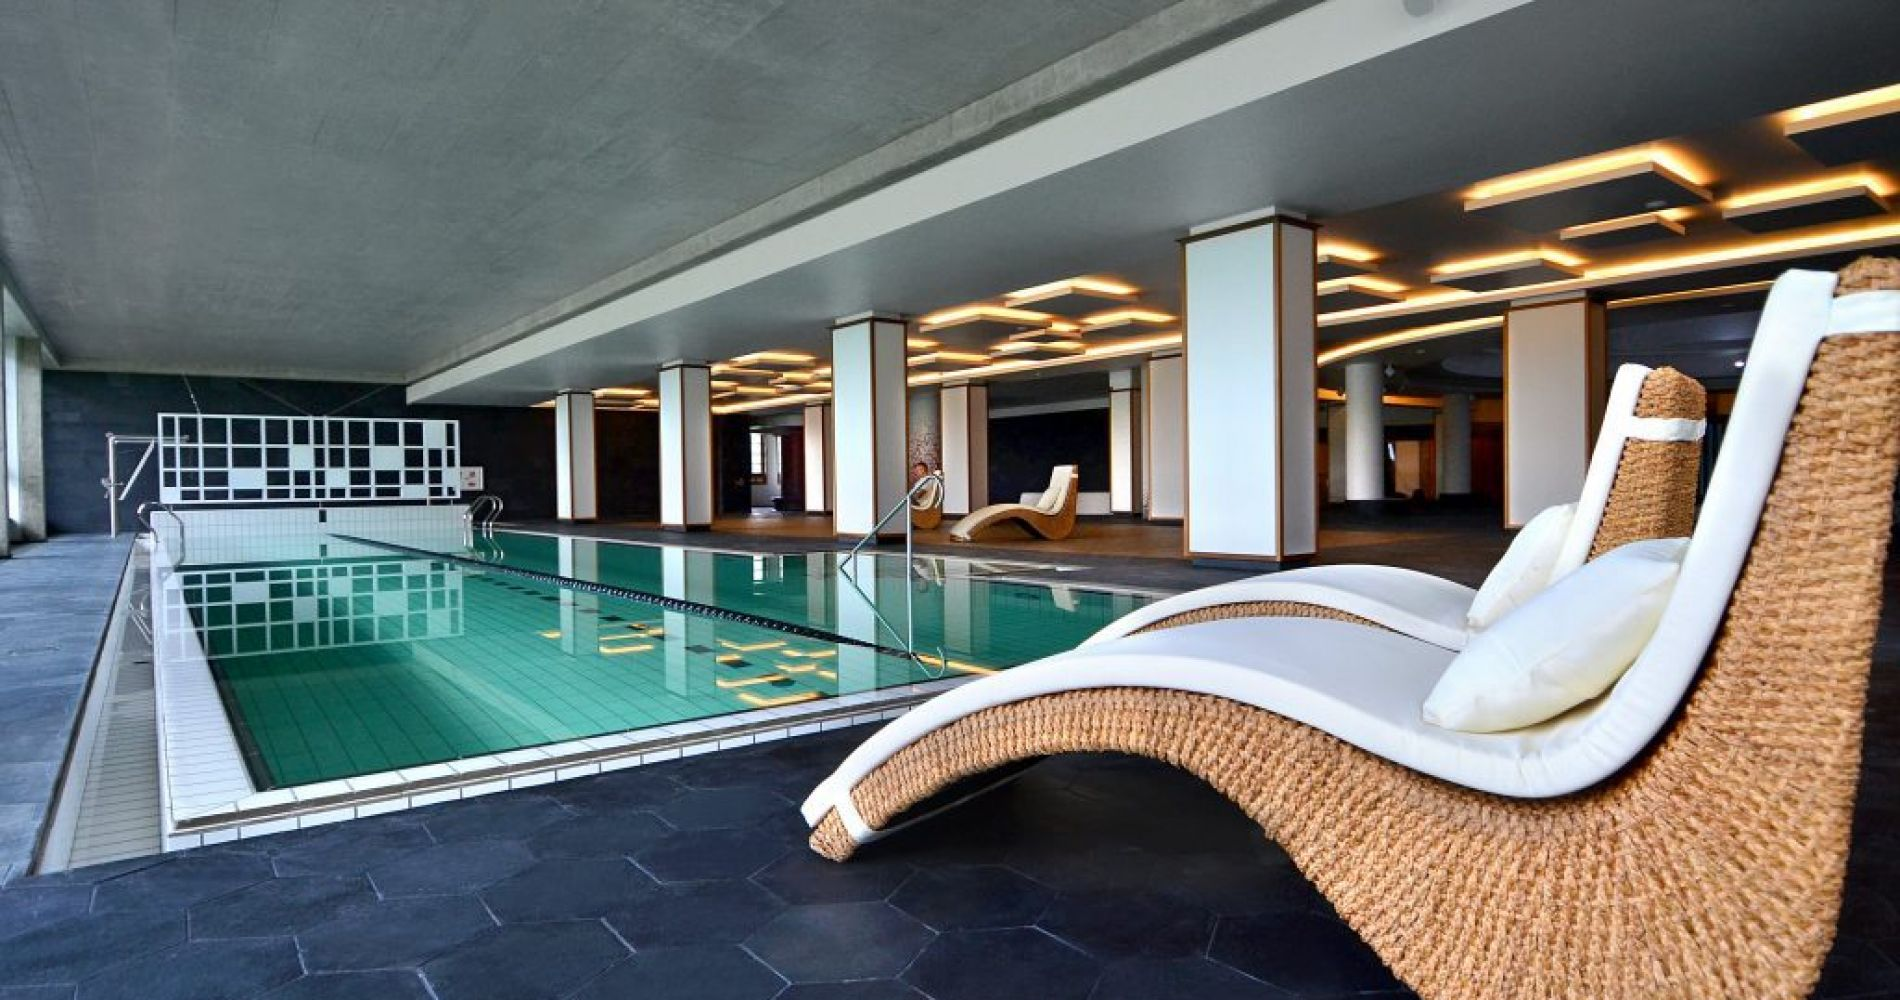 2 Night Stay at Lithuanian Mineral Water Resort for Two